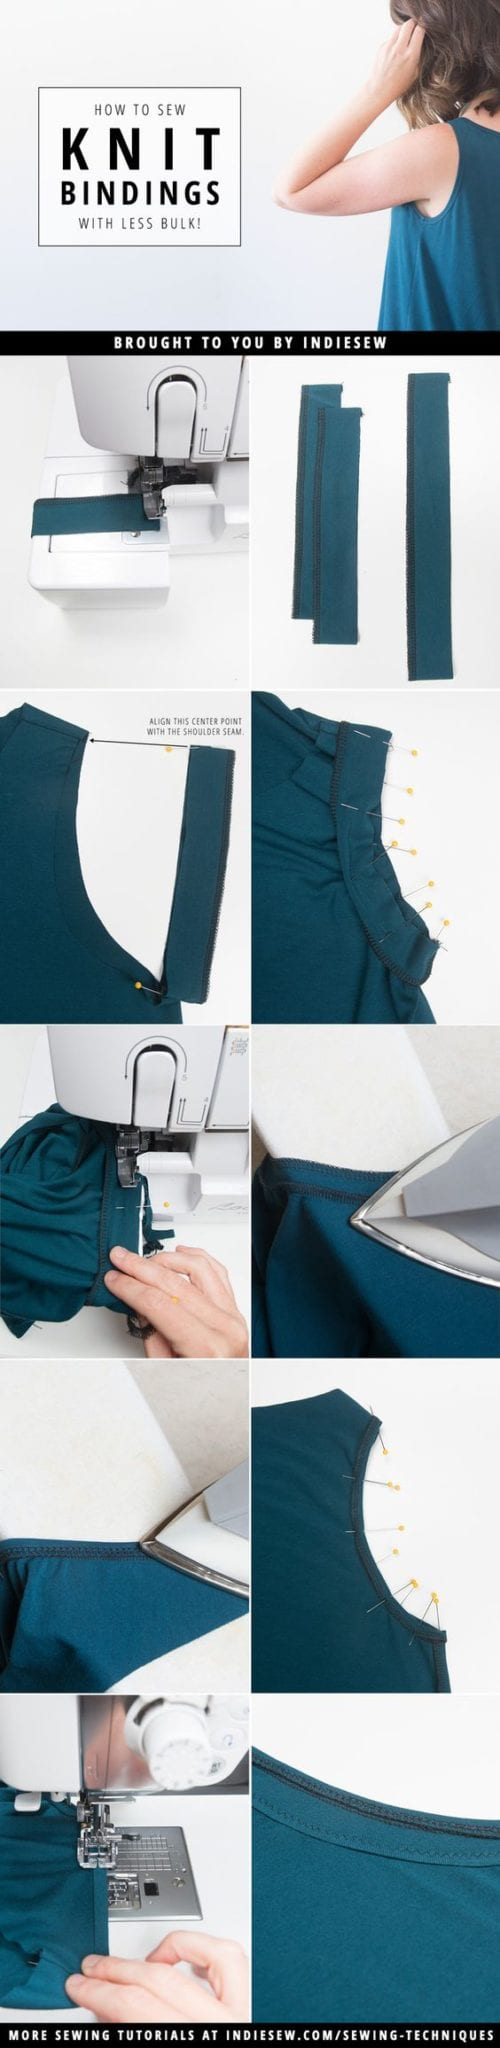 How to Sew Knit Bindings